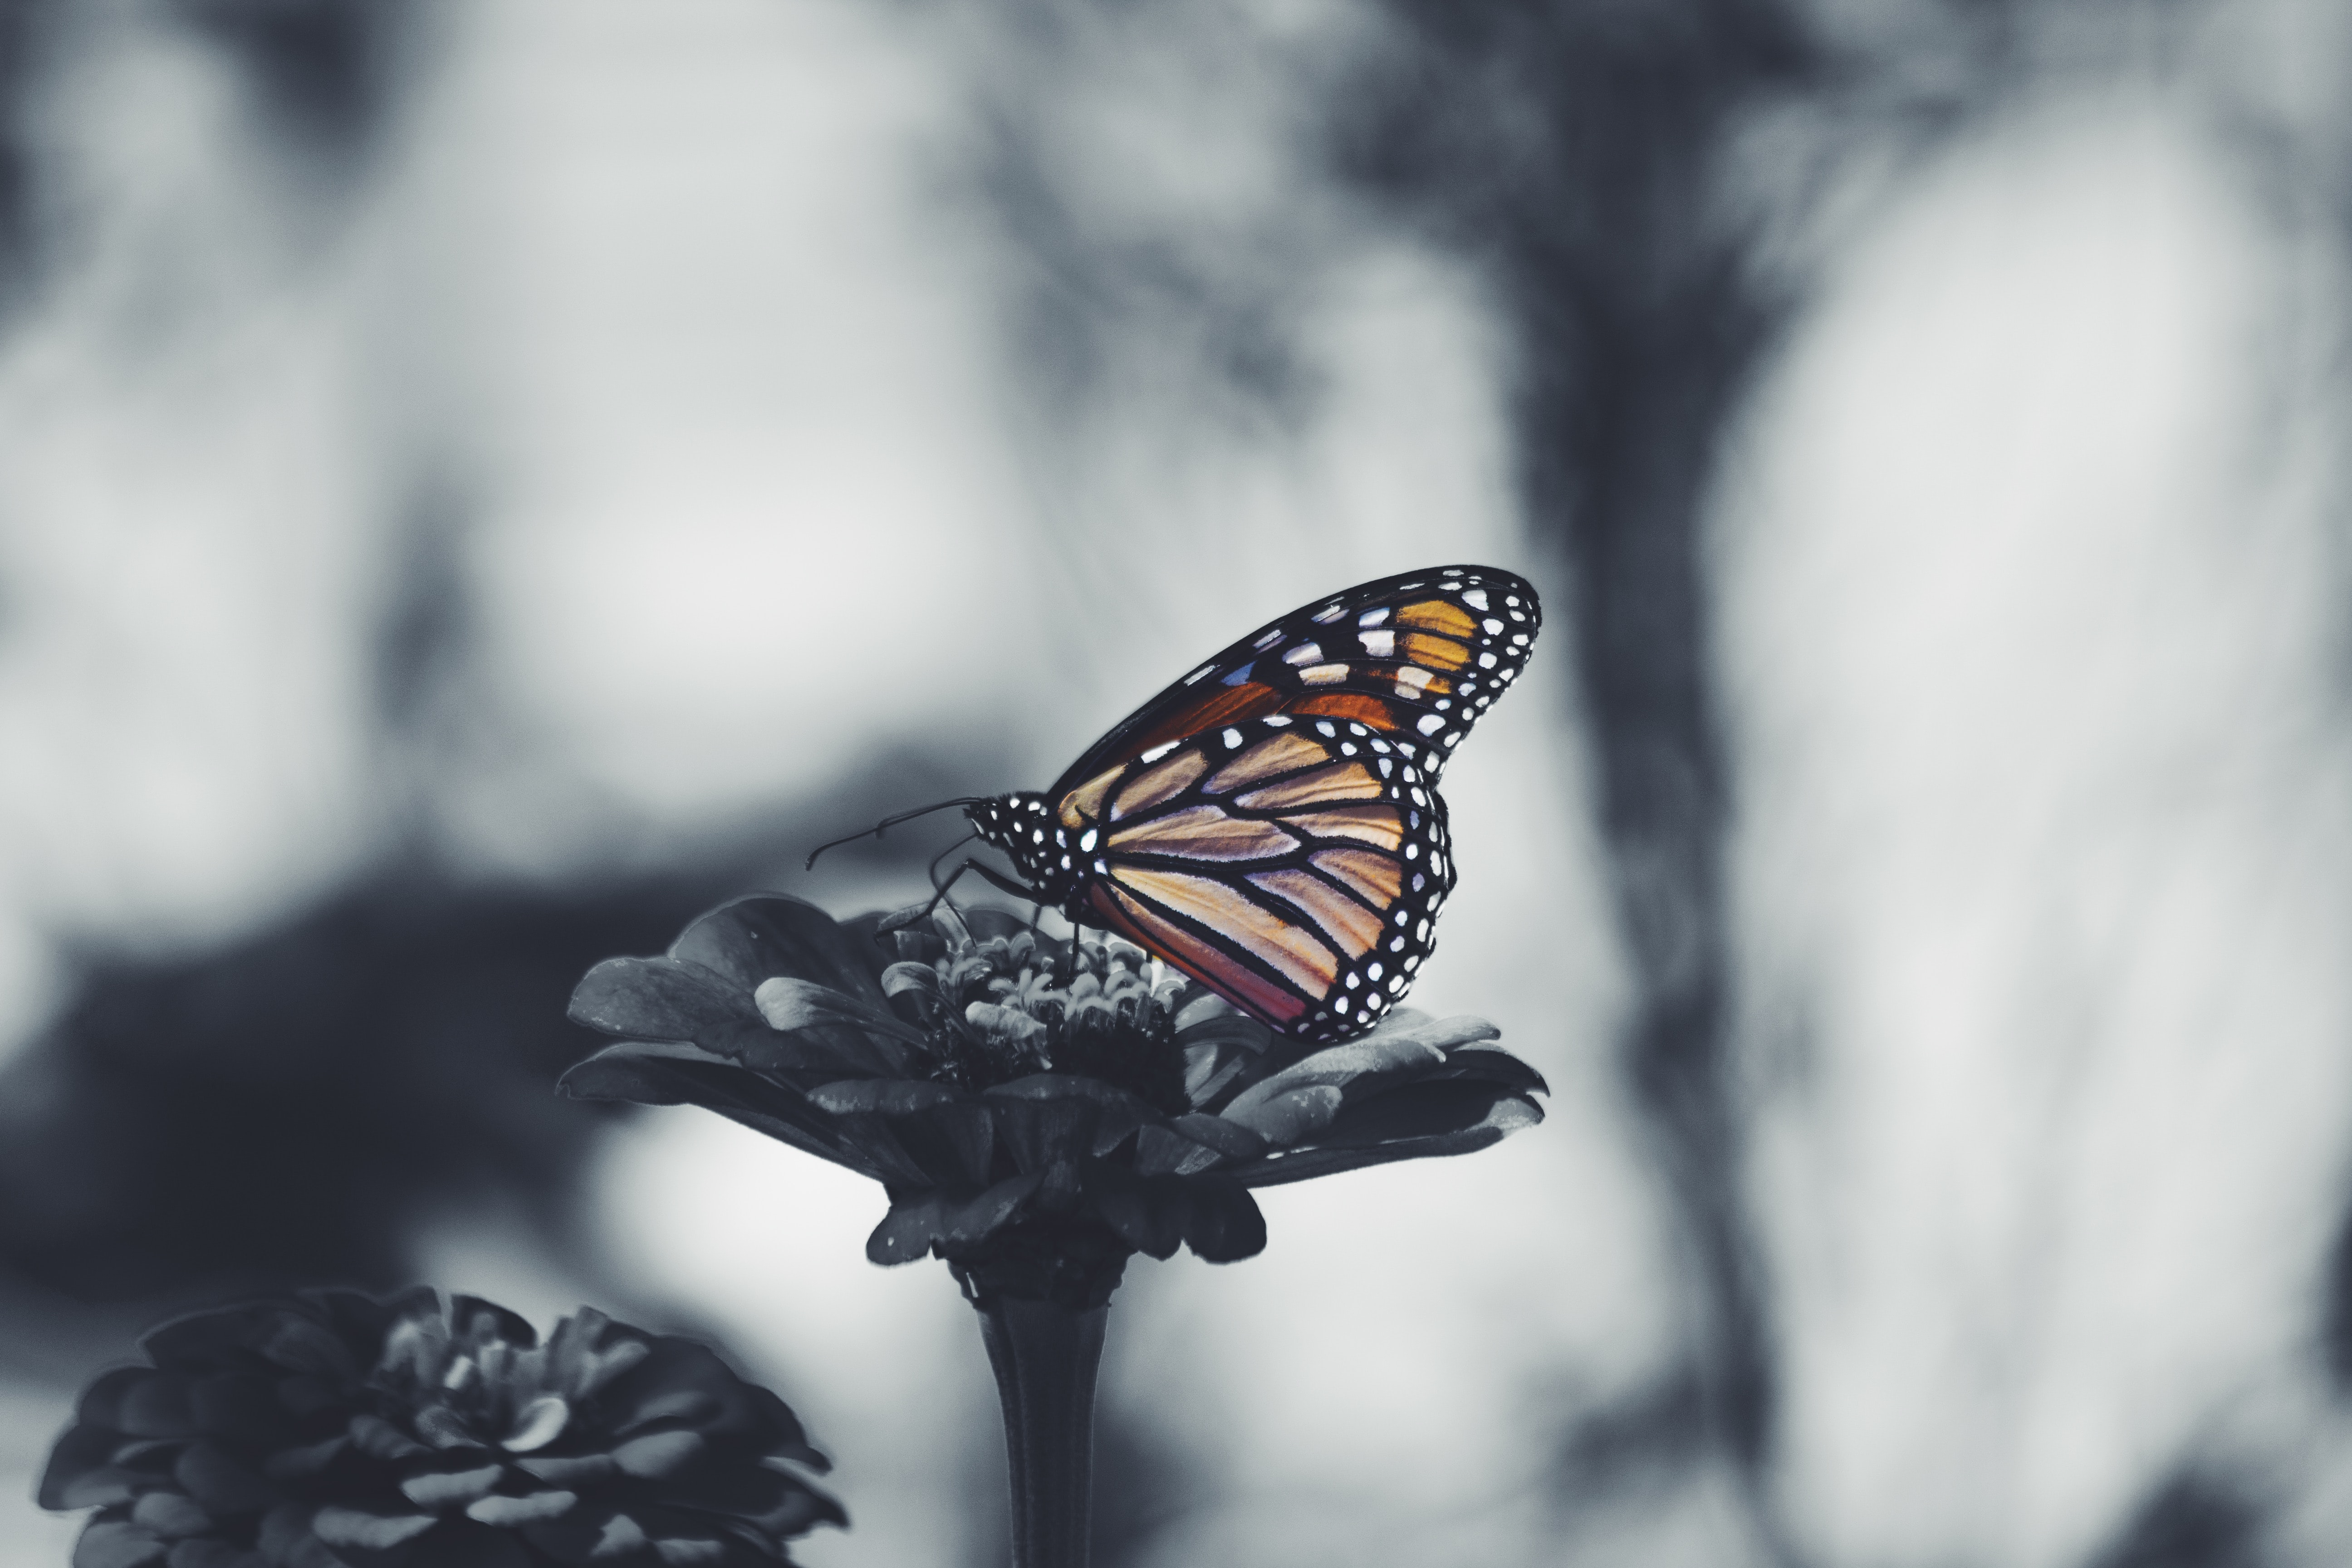 A desaturated shot of a monarch butterfly sitting on a flower